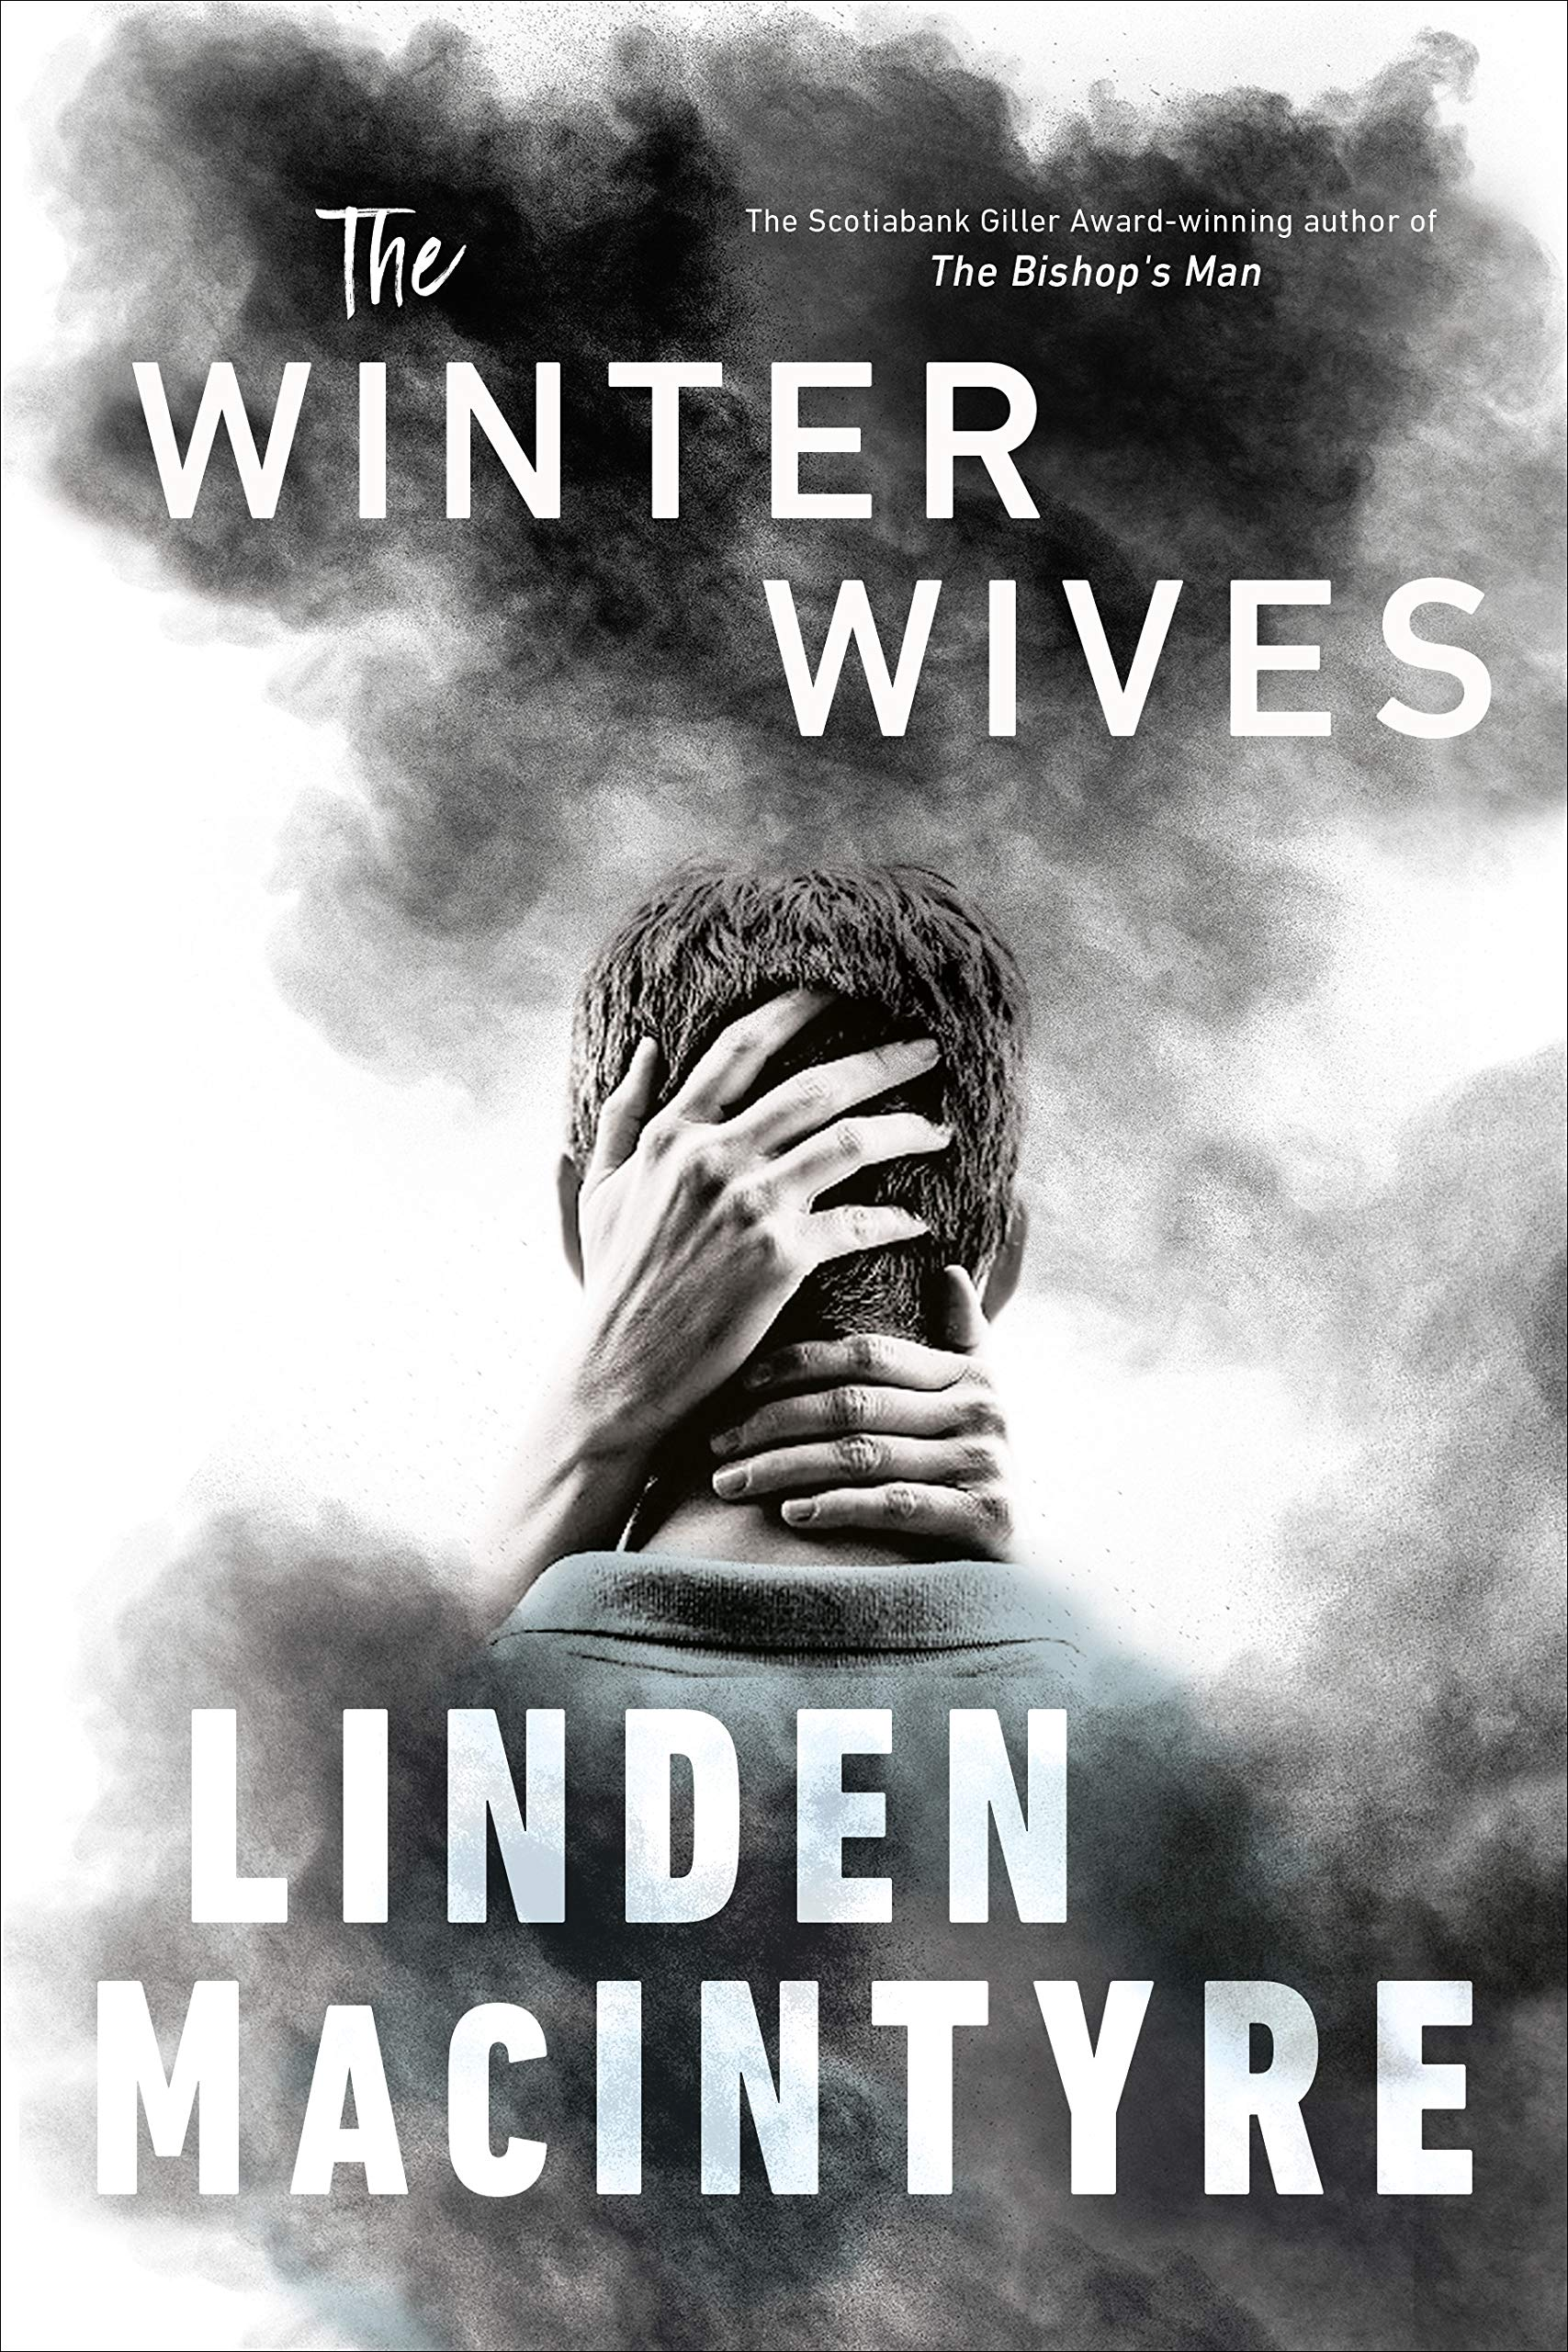 When Does The Winter Wives Come Out? Linden MacIntyre 2021 New Book